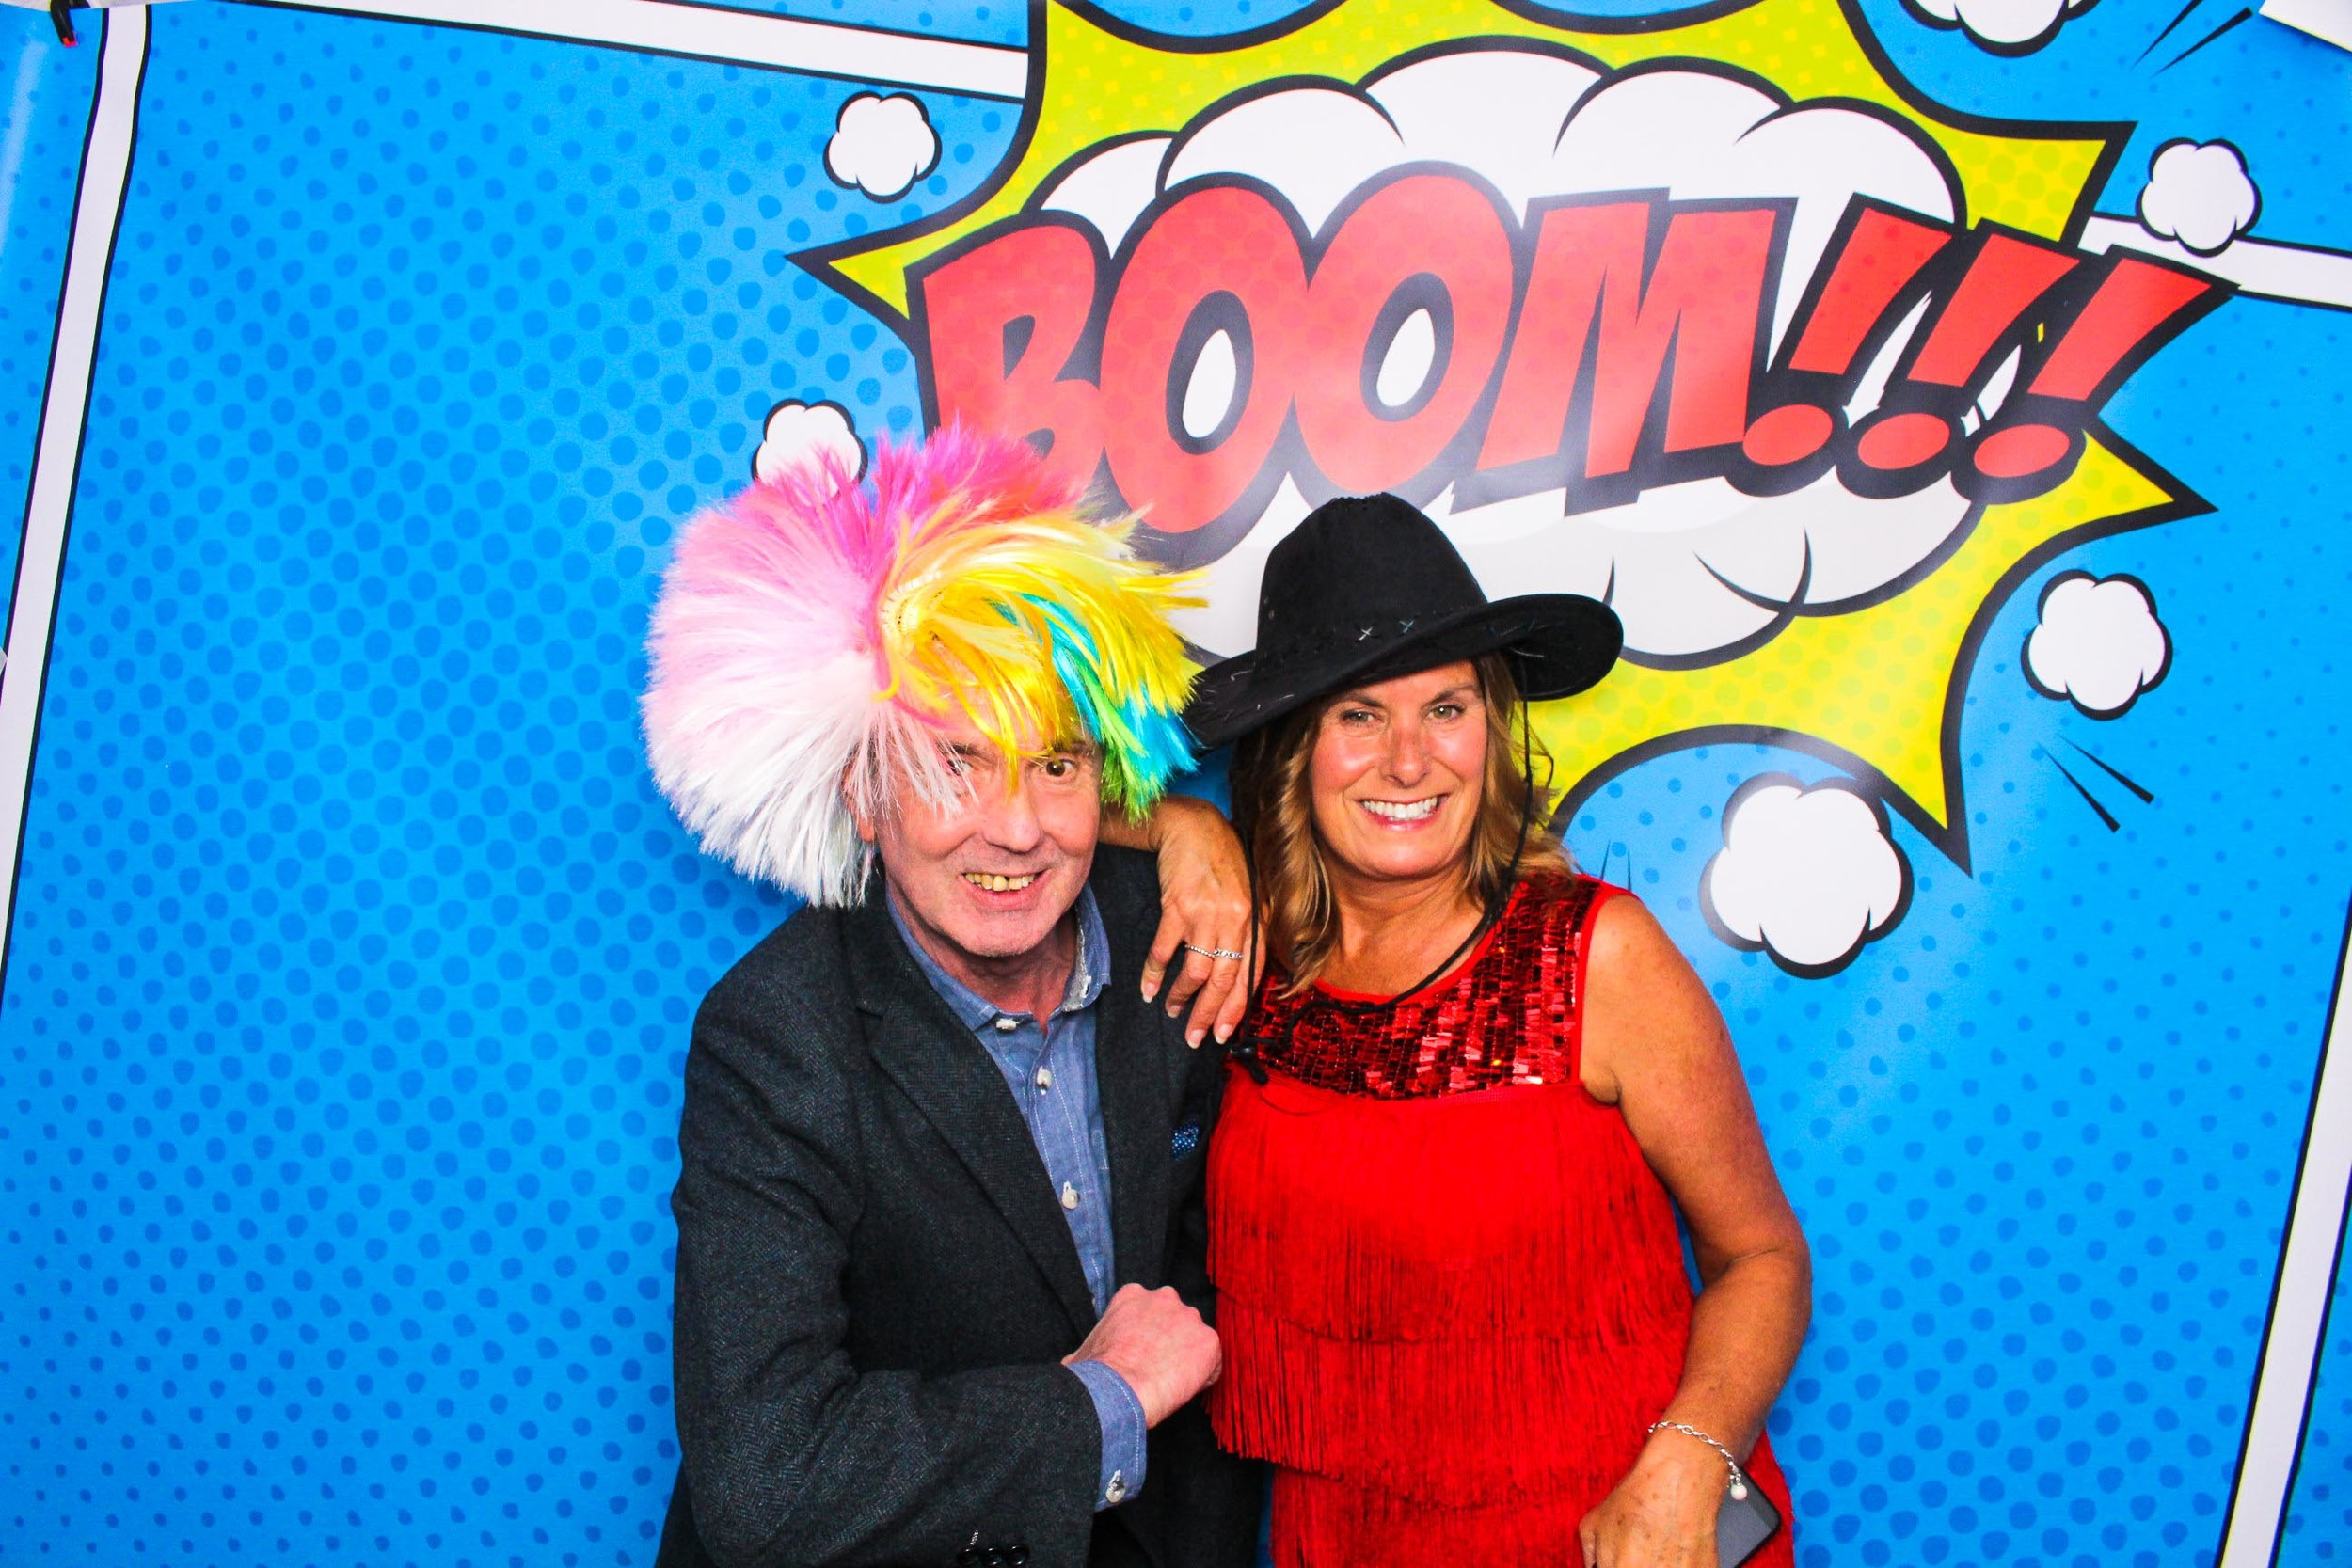 Fotoauto Photo Booth Hire - Shop Direct-108.jpg